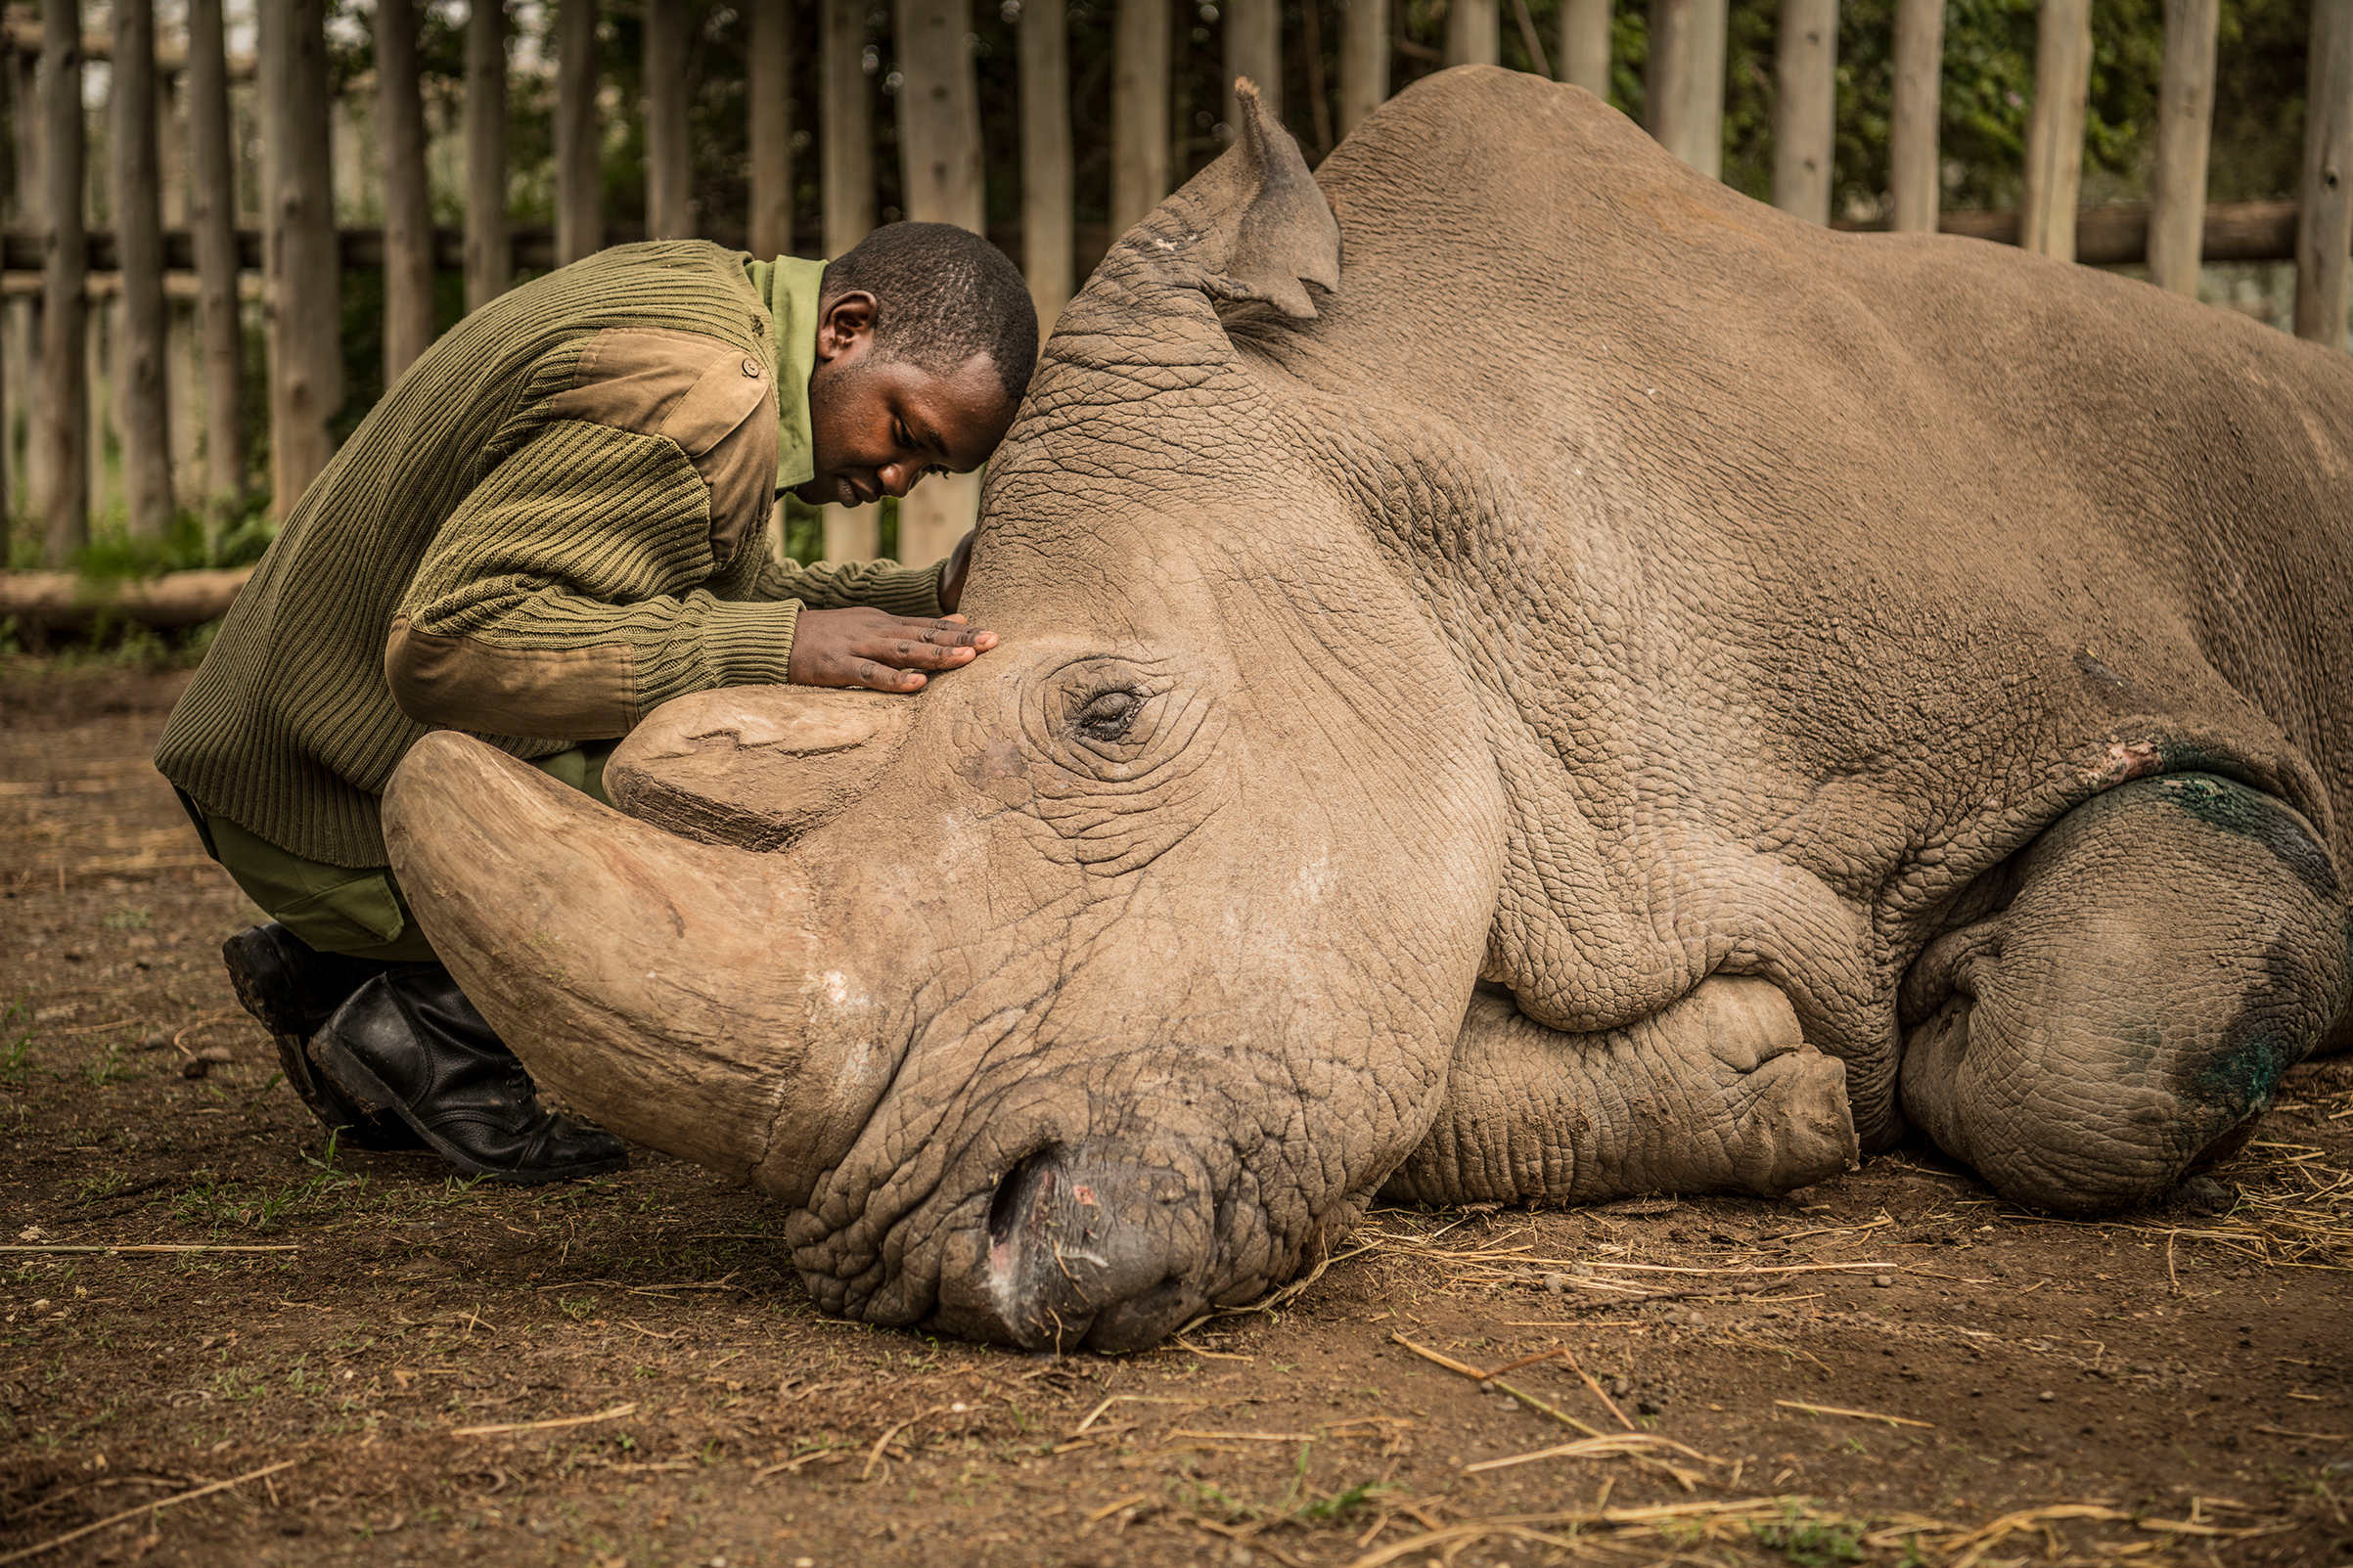 Joseph Wachira, 26, comforts Sudan, the last male Northern White Rhino on the planet, moments before he passed away.